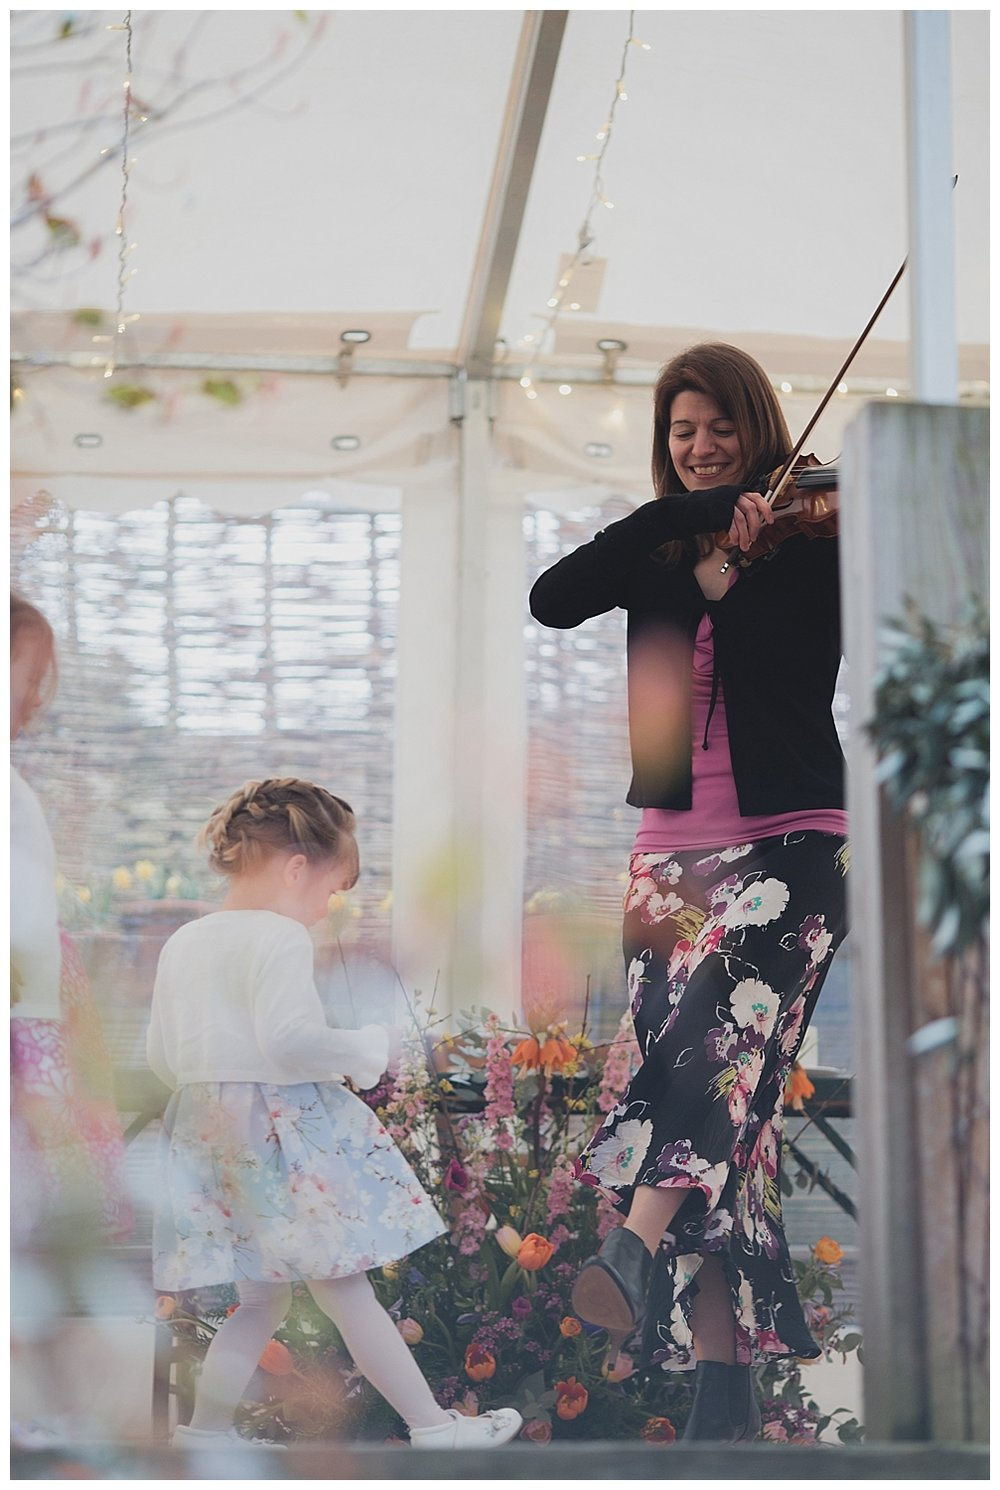 Violinist for wedding ceremonies plays in the marquee at the Roebuck Inn, Mobberley.